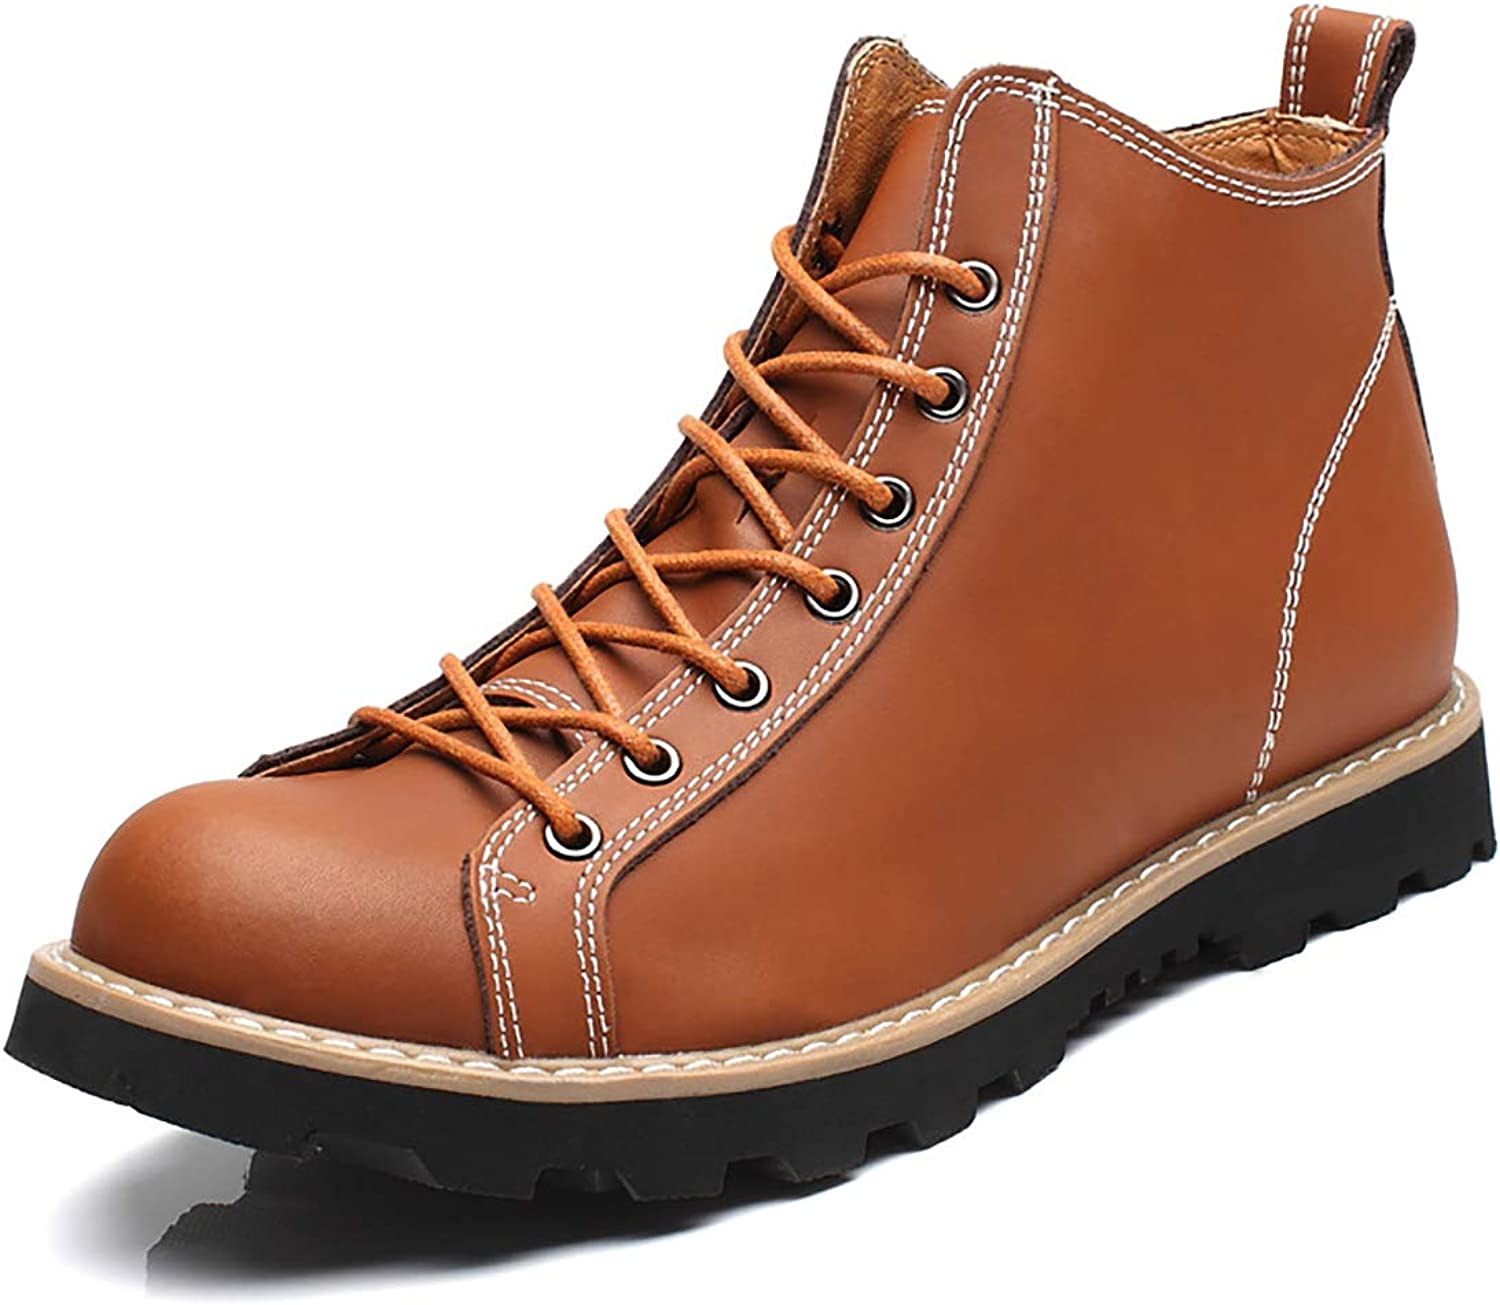 Men's Outdoor Lace UP Round Head Bare Leather Combat Martin Boots Rubber Sole Retro Casual Artificial Leather Boots,Brown,42